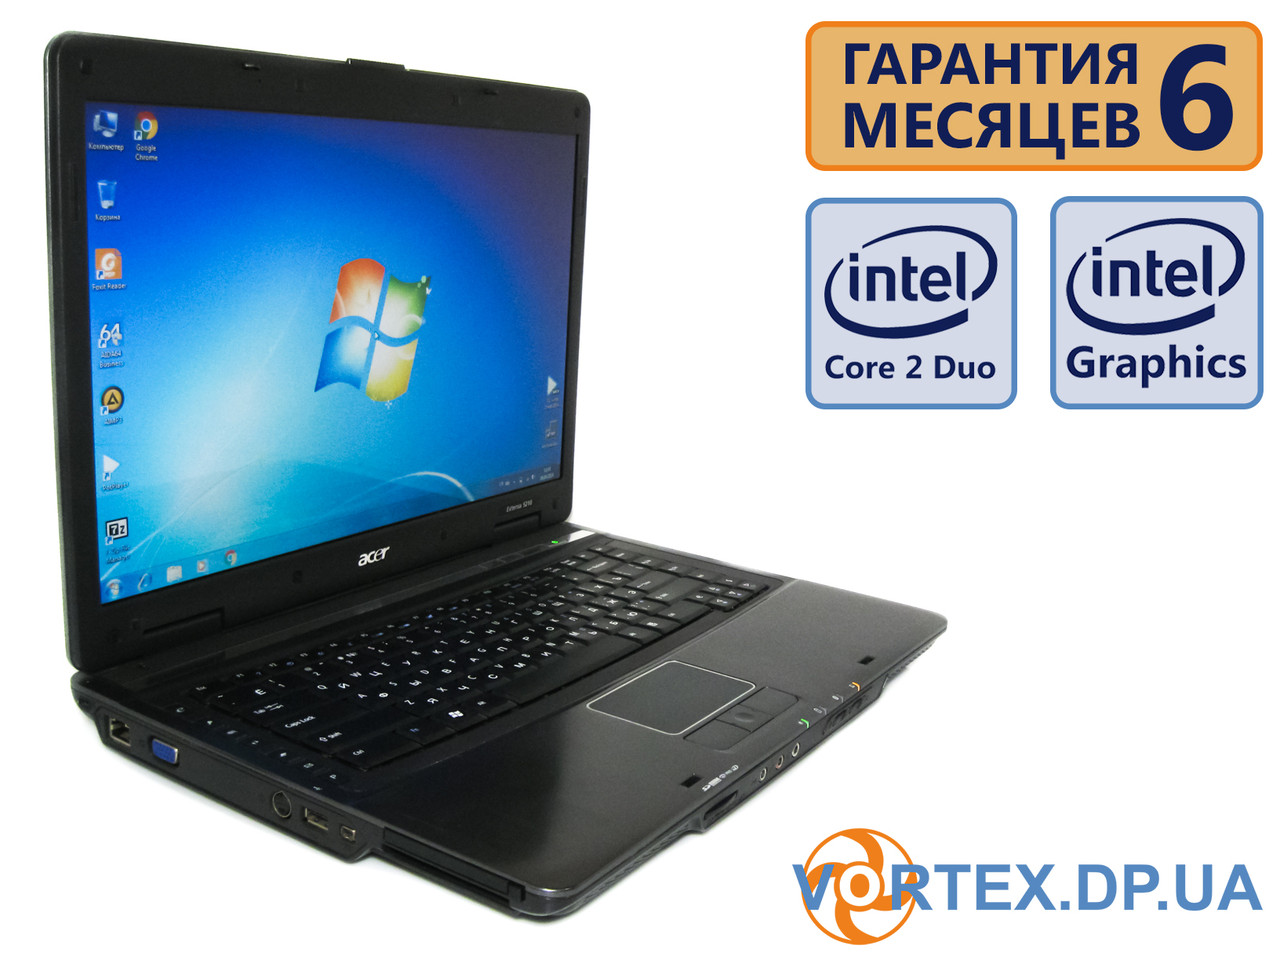 Acer Extensa 5210 Display Drivers for Windows XP